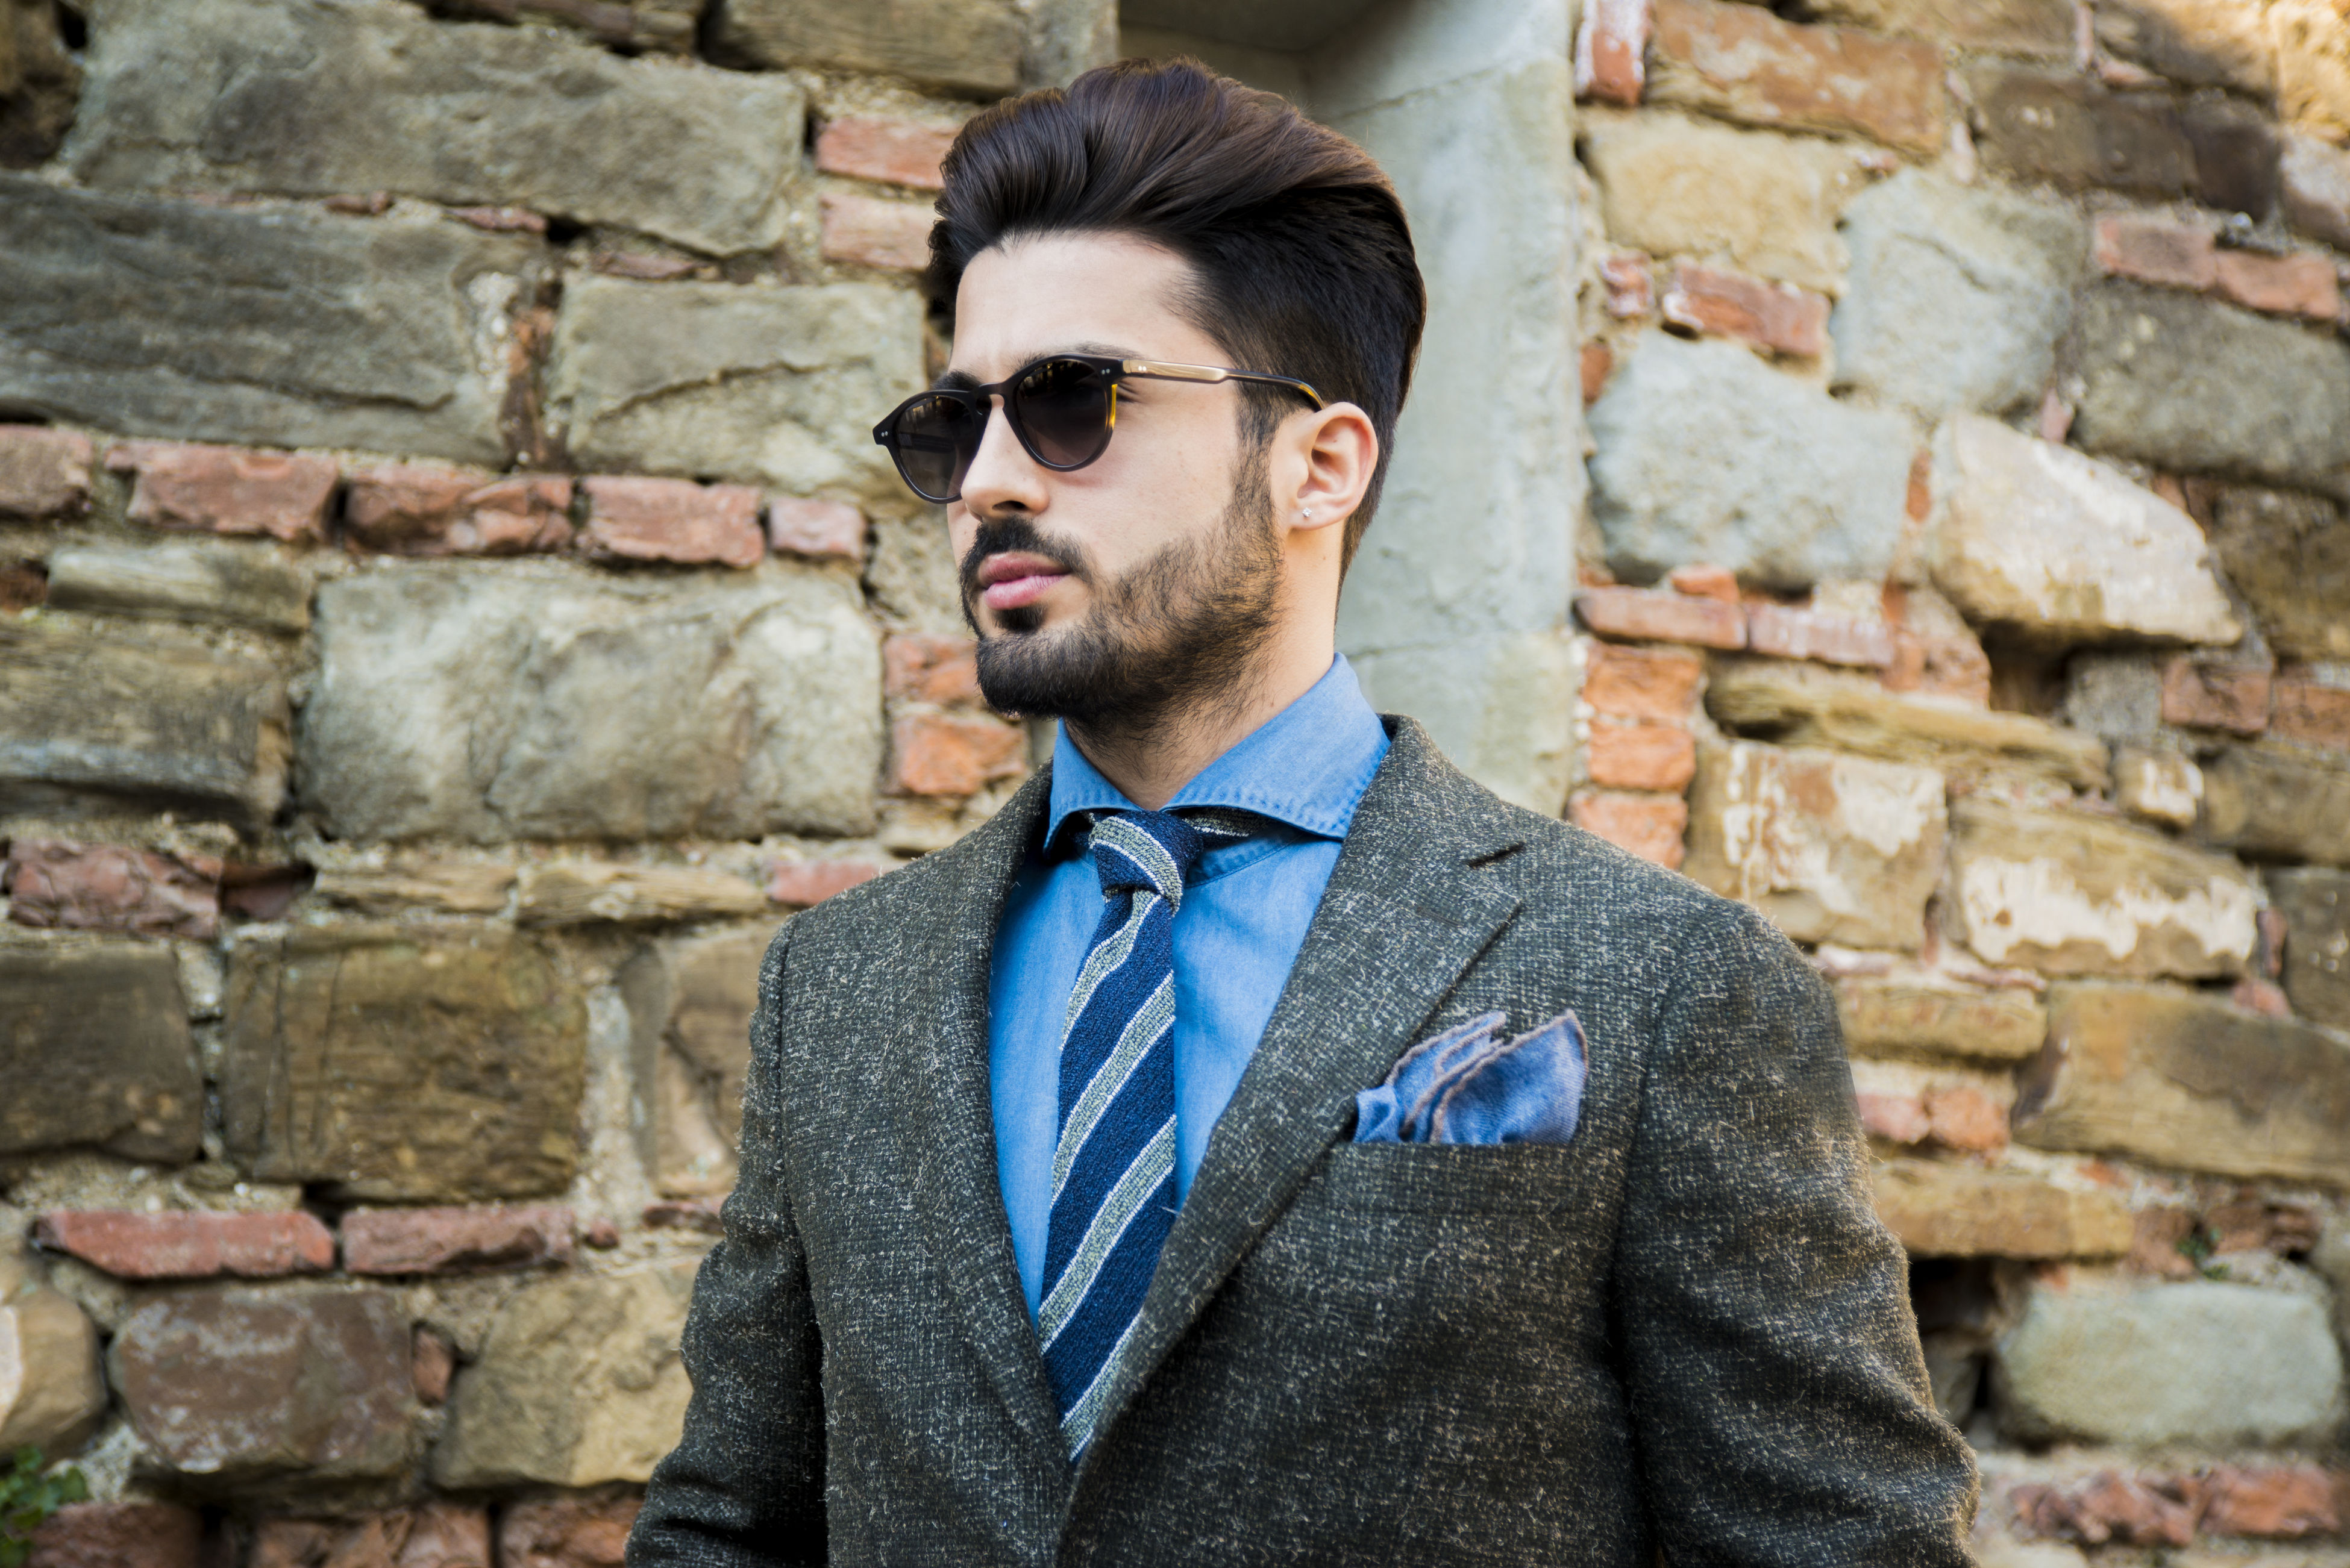 beard, only men, one man only, adults only, handsome, one person, men, fashion, brick wall, adult, real people, portrait, well-dressed, people, outdoors, businessman, close-up, day